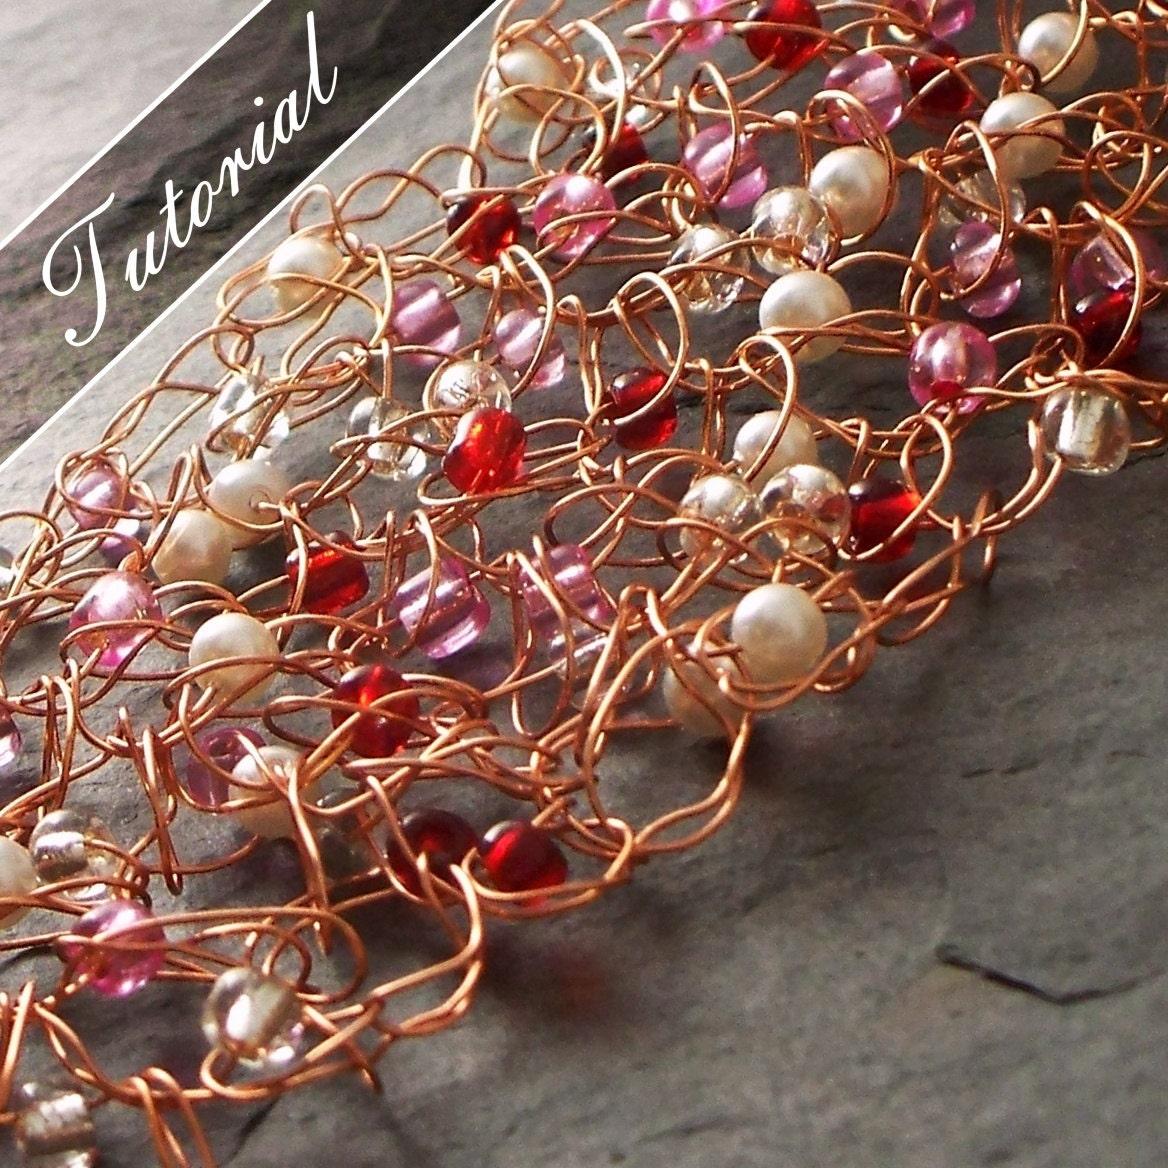 Crocheting With Wire : Jewelry Tutorial. Wire Crochet with Beads by VCArtisanOriginals